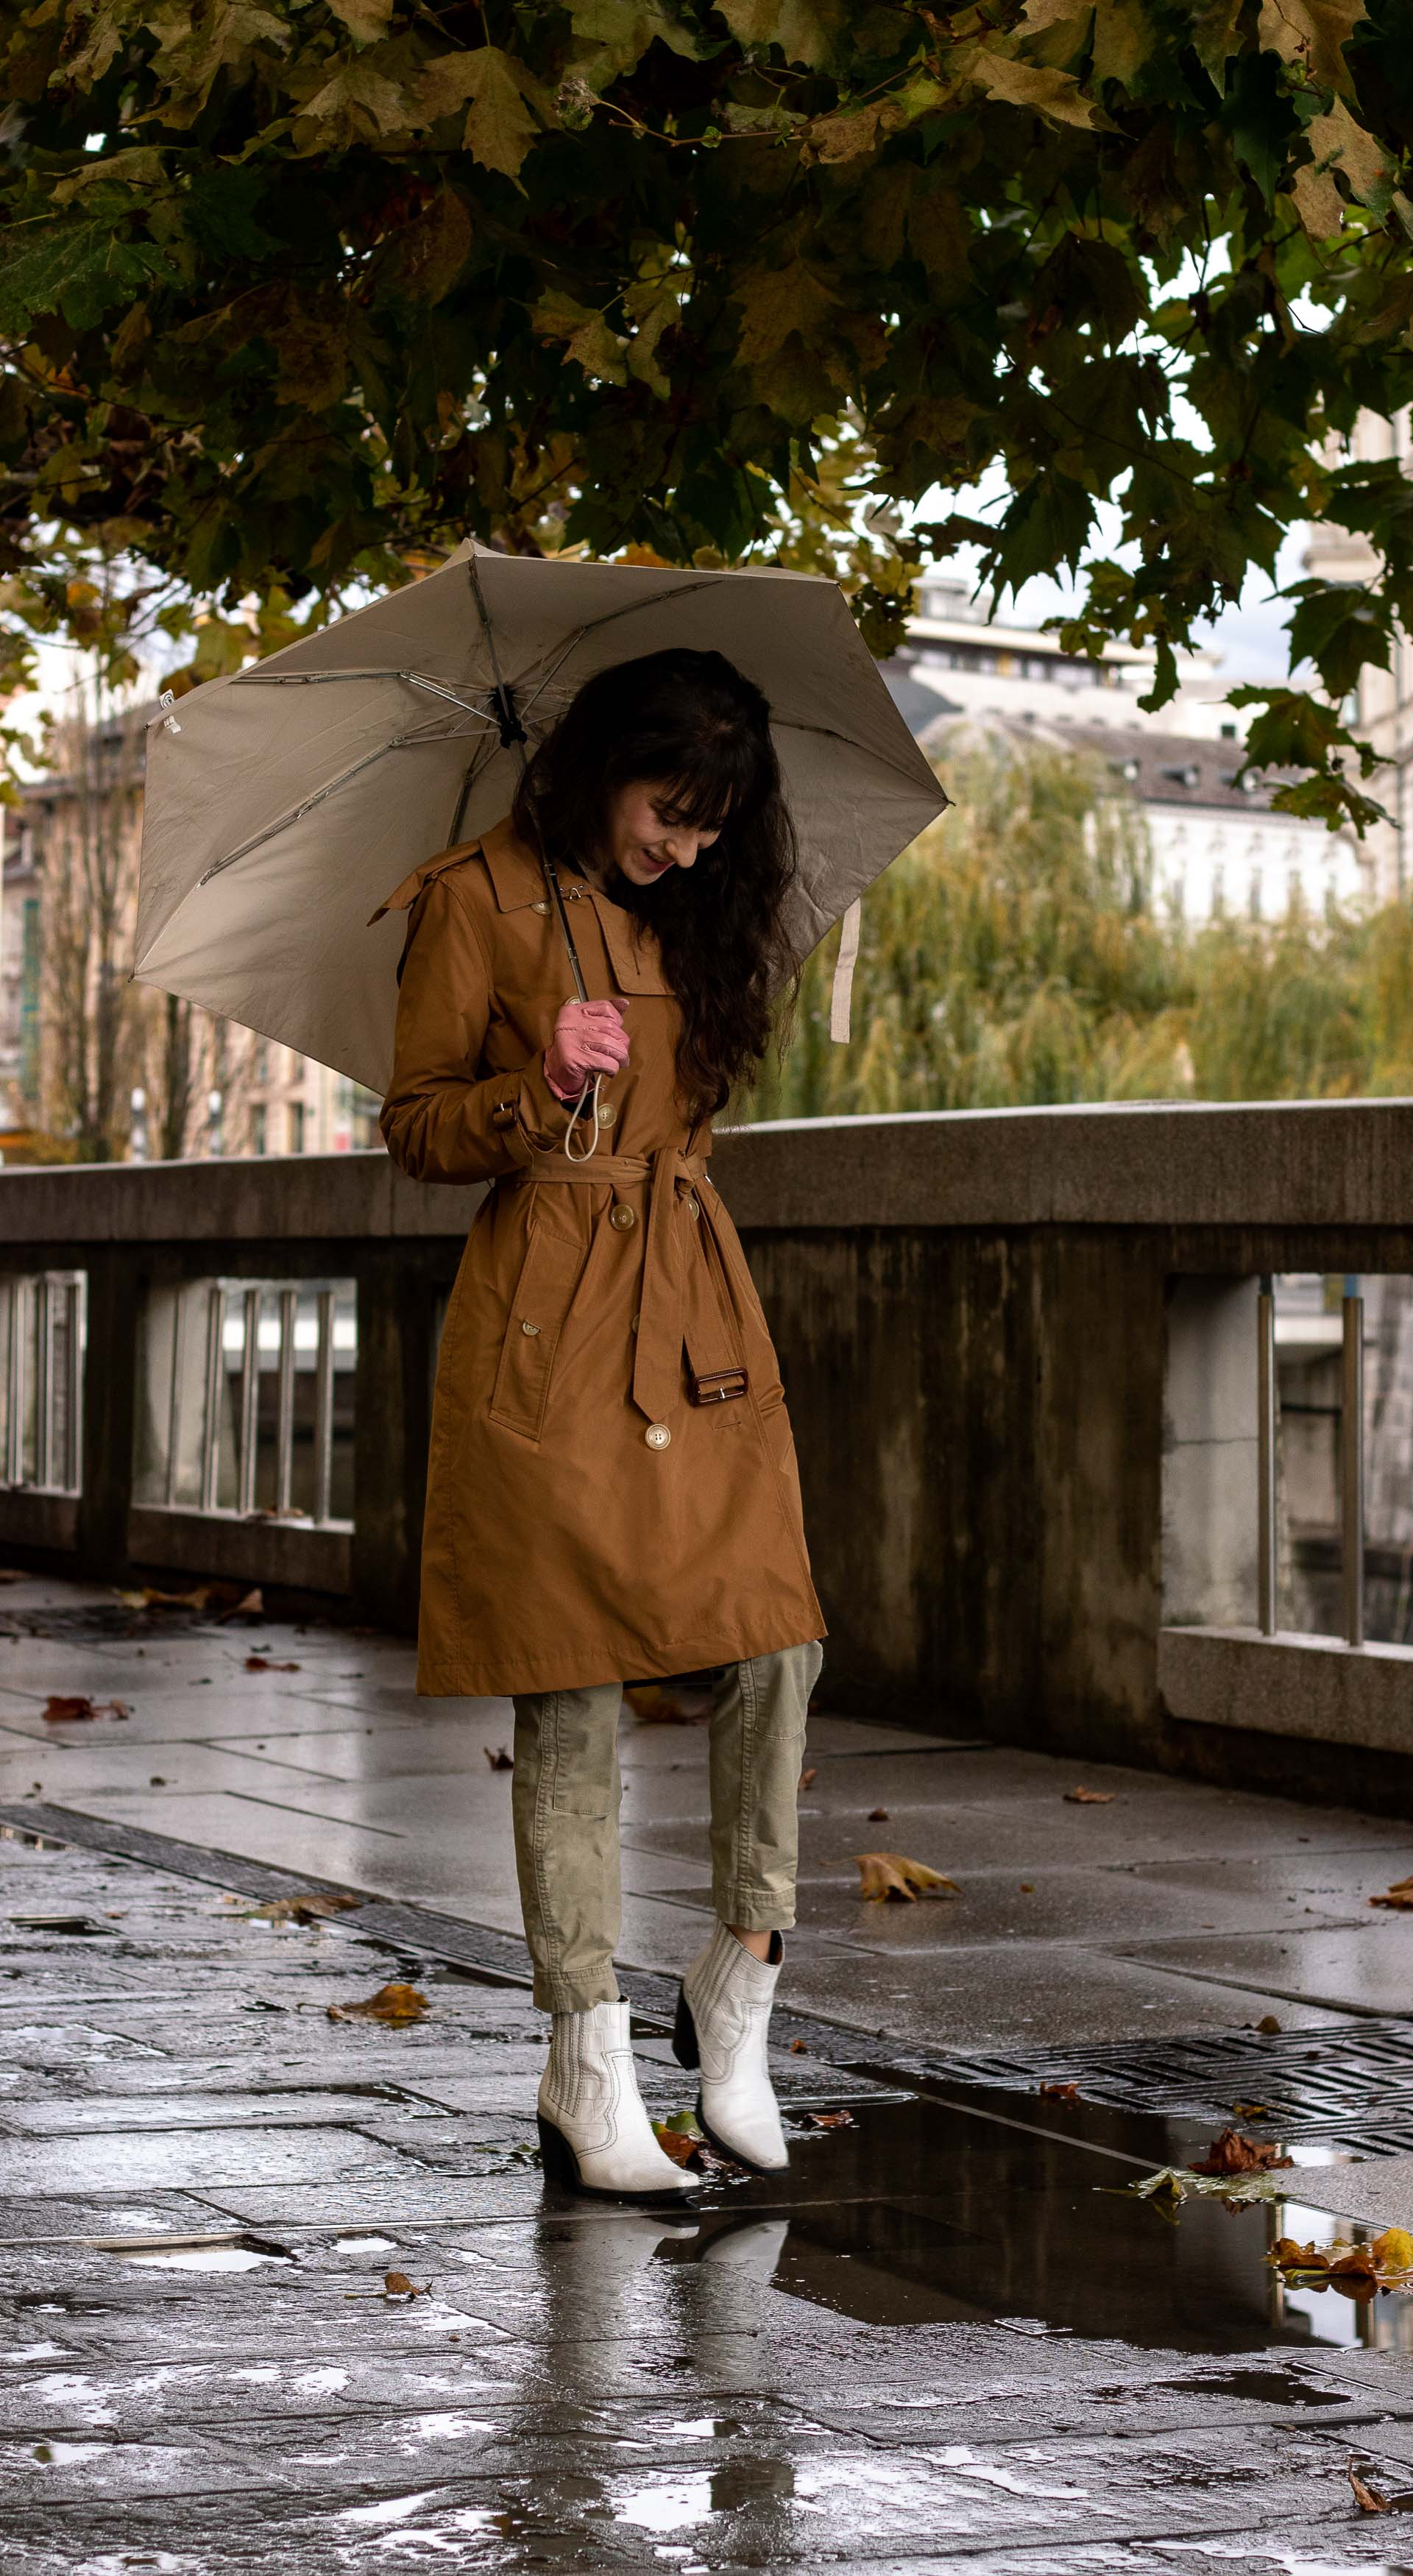 Fashion blogger Veronika Lipar of Brunette from Wall Street wearing white Ganni ankle boots camel Burberry trench coat Re/Done cargo pants pink gloves umbrella in the rain